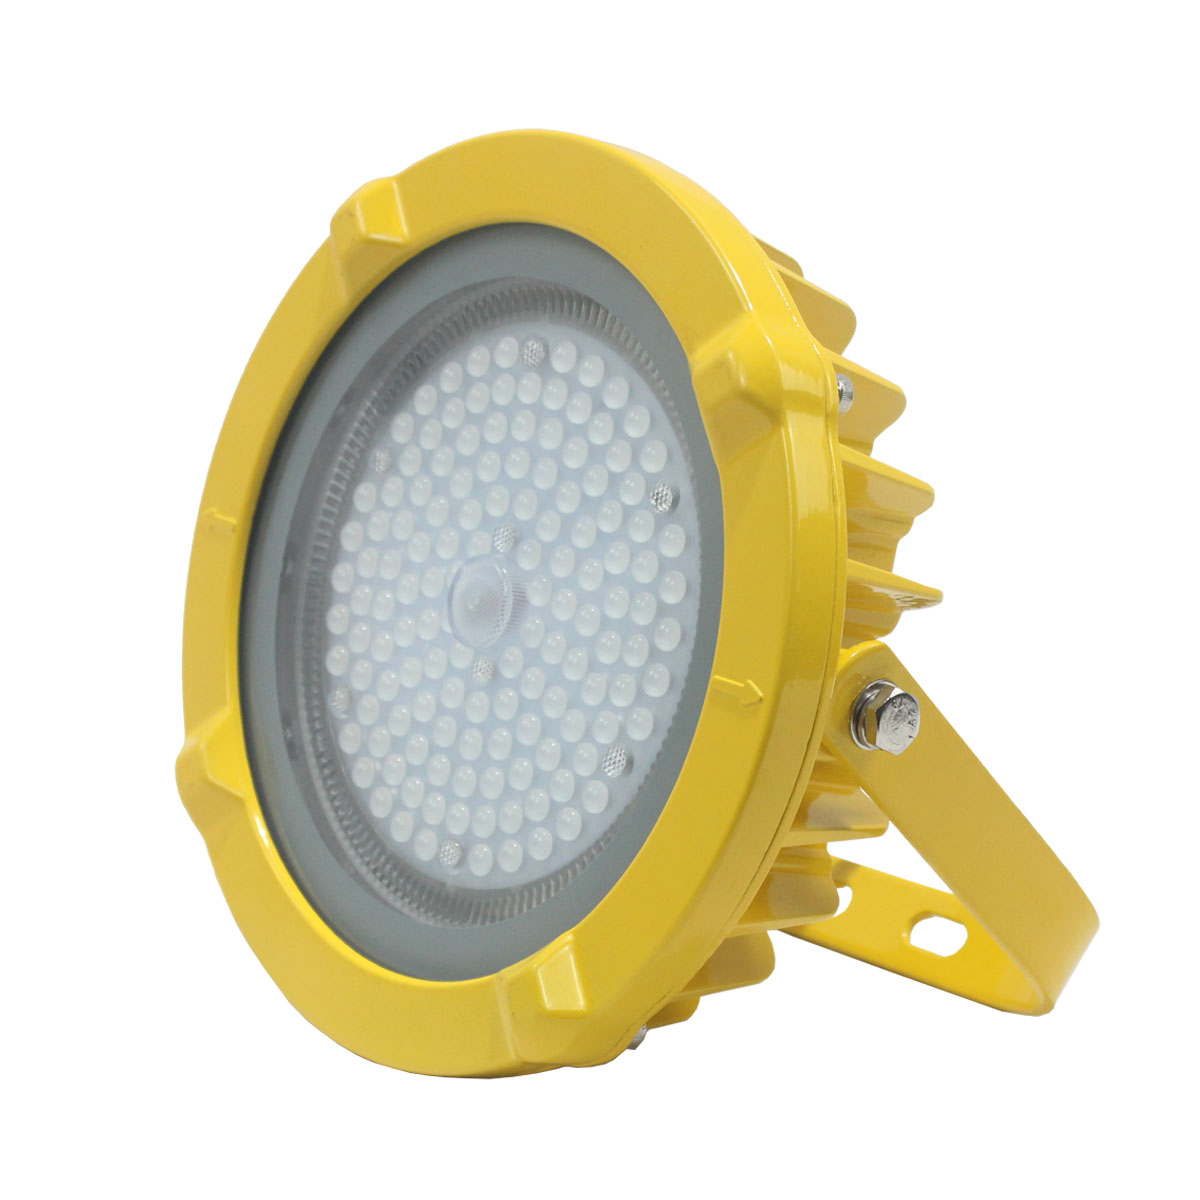 MAXL-5040 Explosion Proof Floodlight